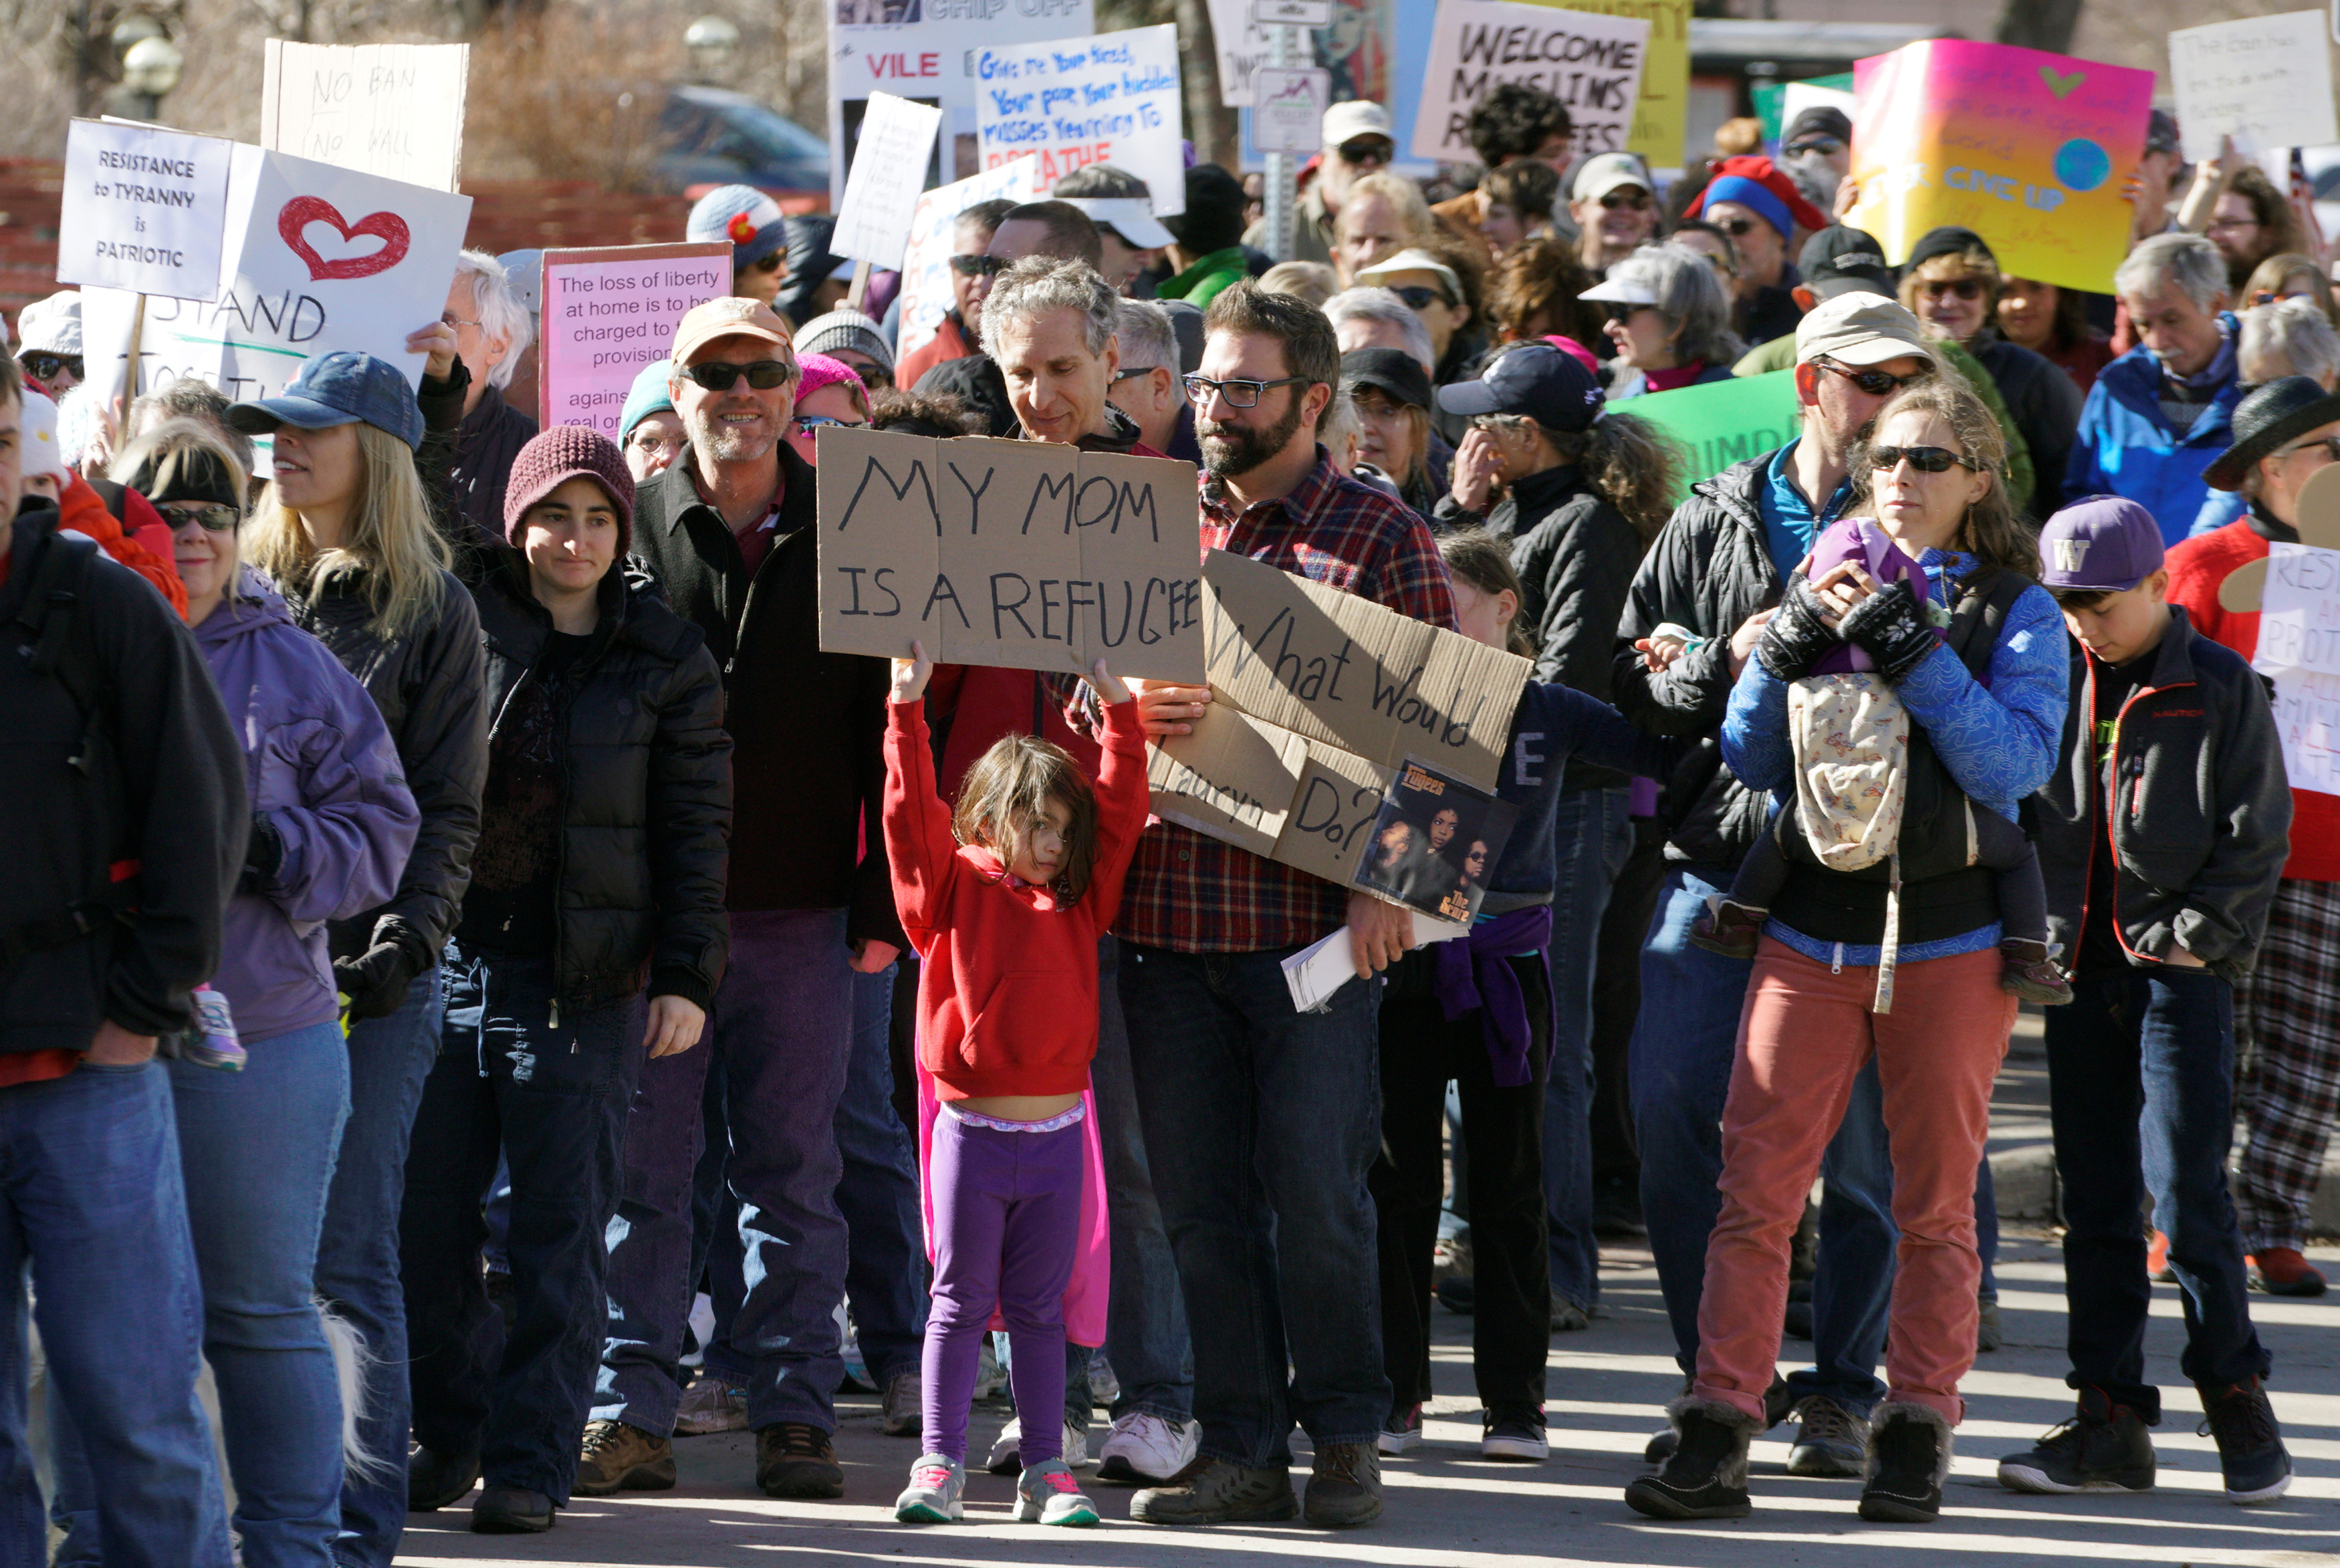 People march to voice their disapproval of U.S. President Donald Trump's policies downtown Boulder, Colorado, U.S. February 4, 2017. REUTERS/Rick Wilking - RTX2ZN0S